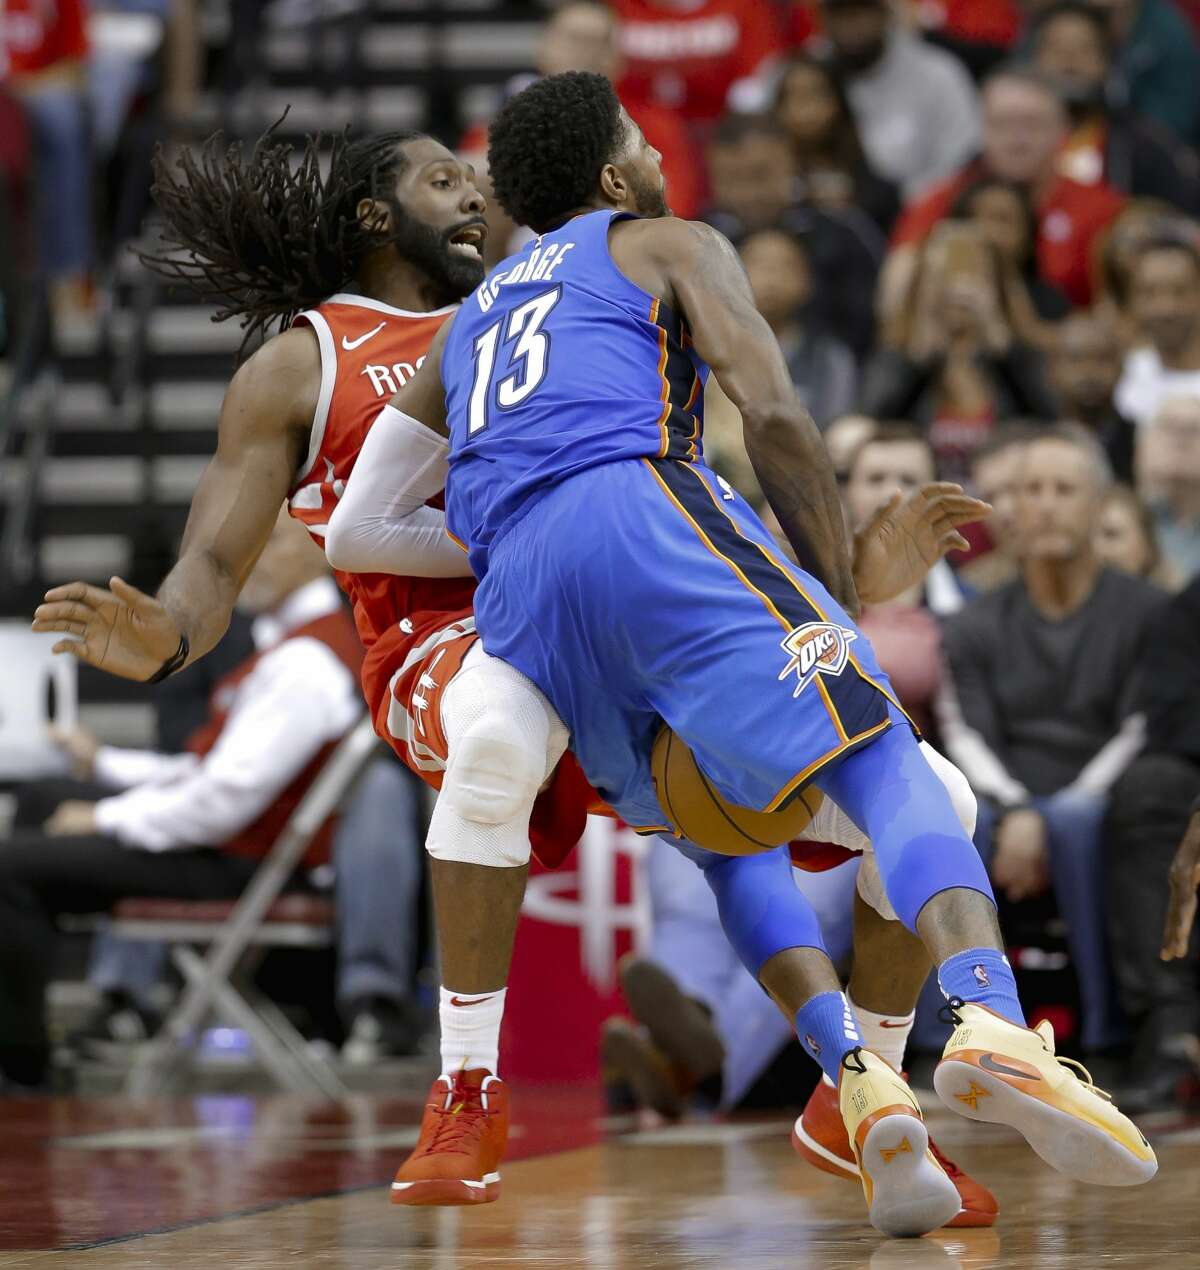 Oklahoma City Thunder forward Paul George (13) drives into Houston Rockets center Nene (42) and is called for an offensive foul during the second half of an NBA basketball game Saturday, April 7, 2018, in Houston. (AP Photo/Michael Wyke)